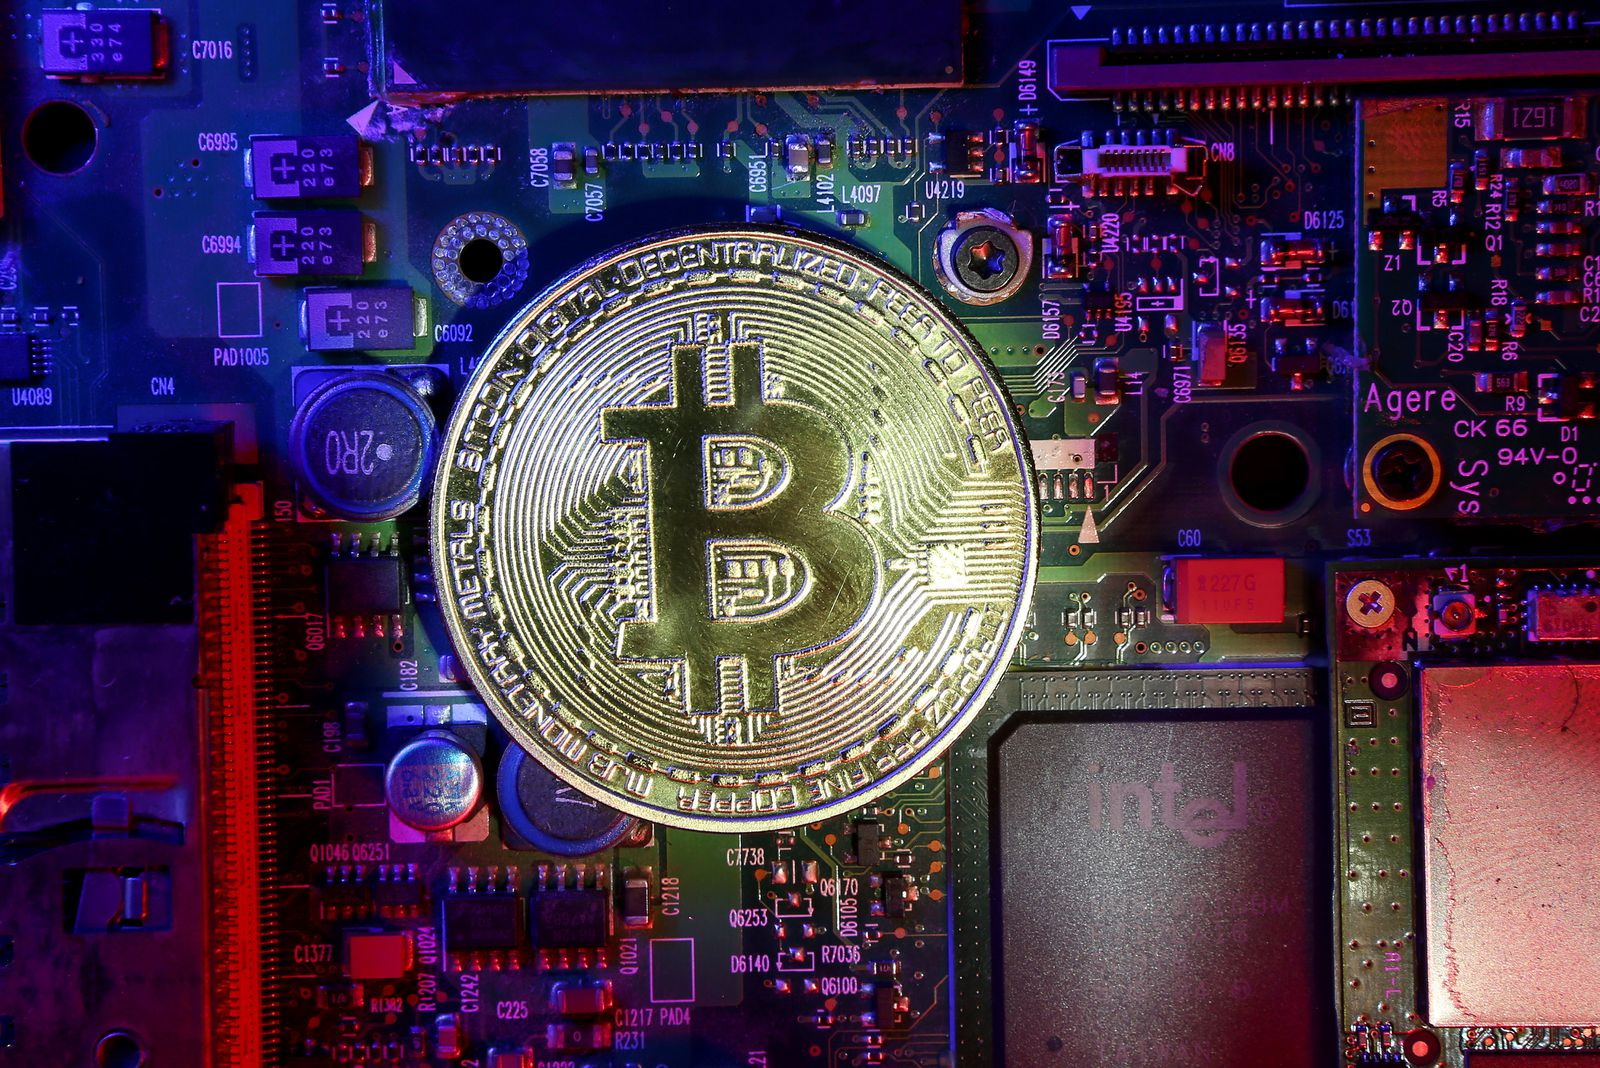 Bitcoin is a cryptocurrency and worldwide payment system.